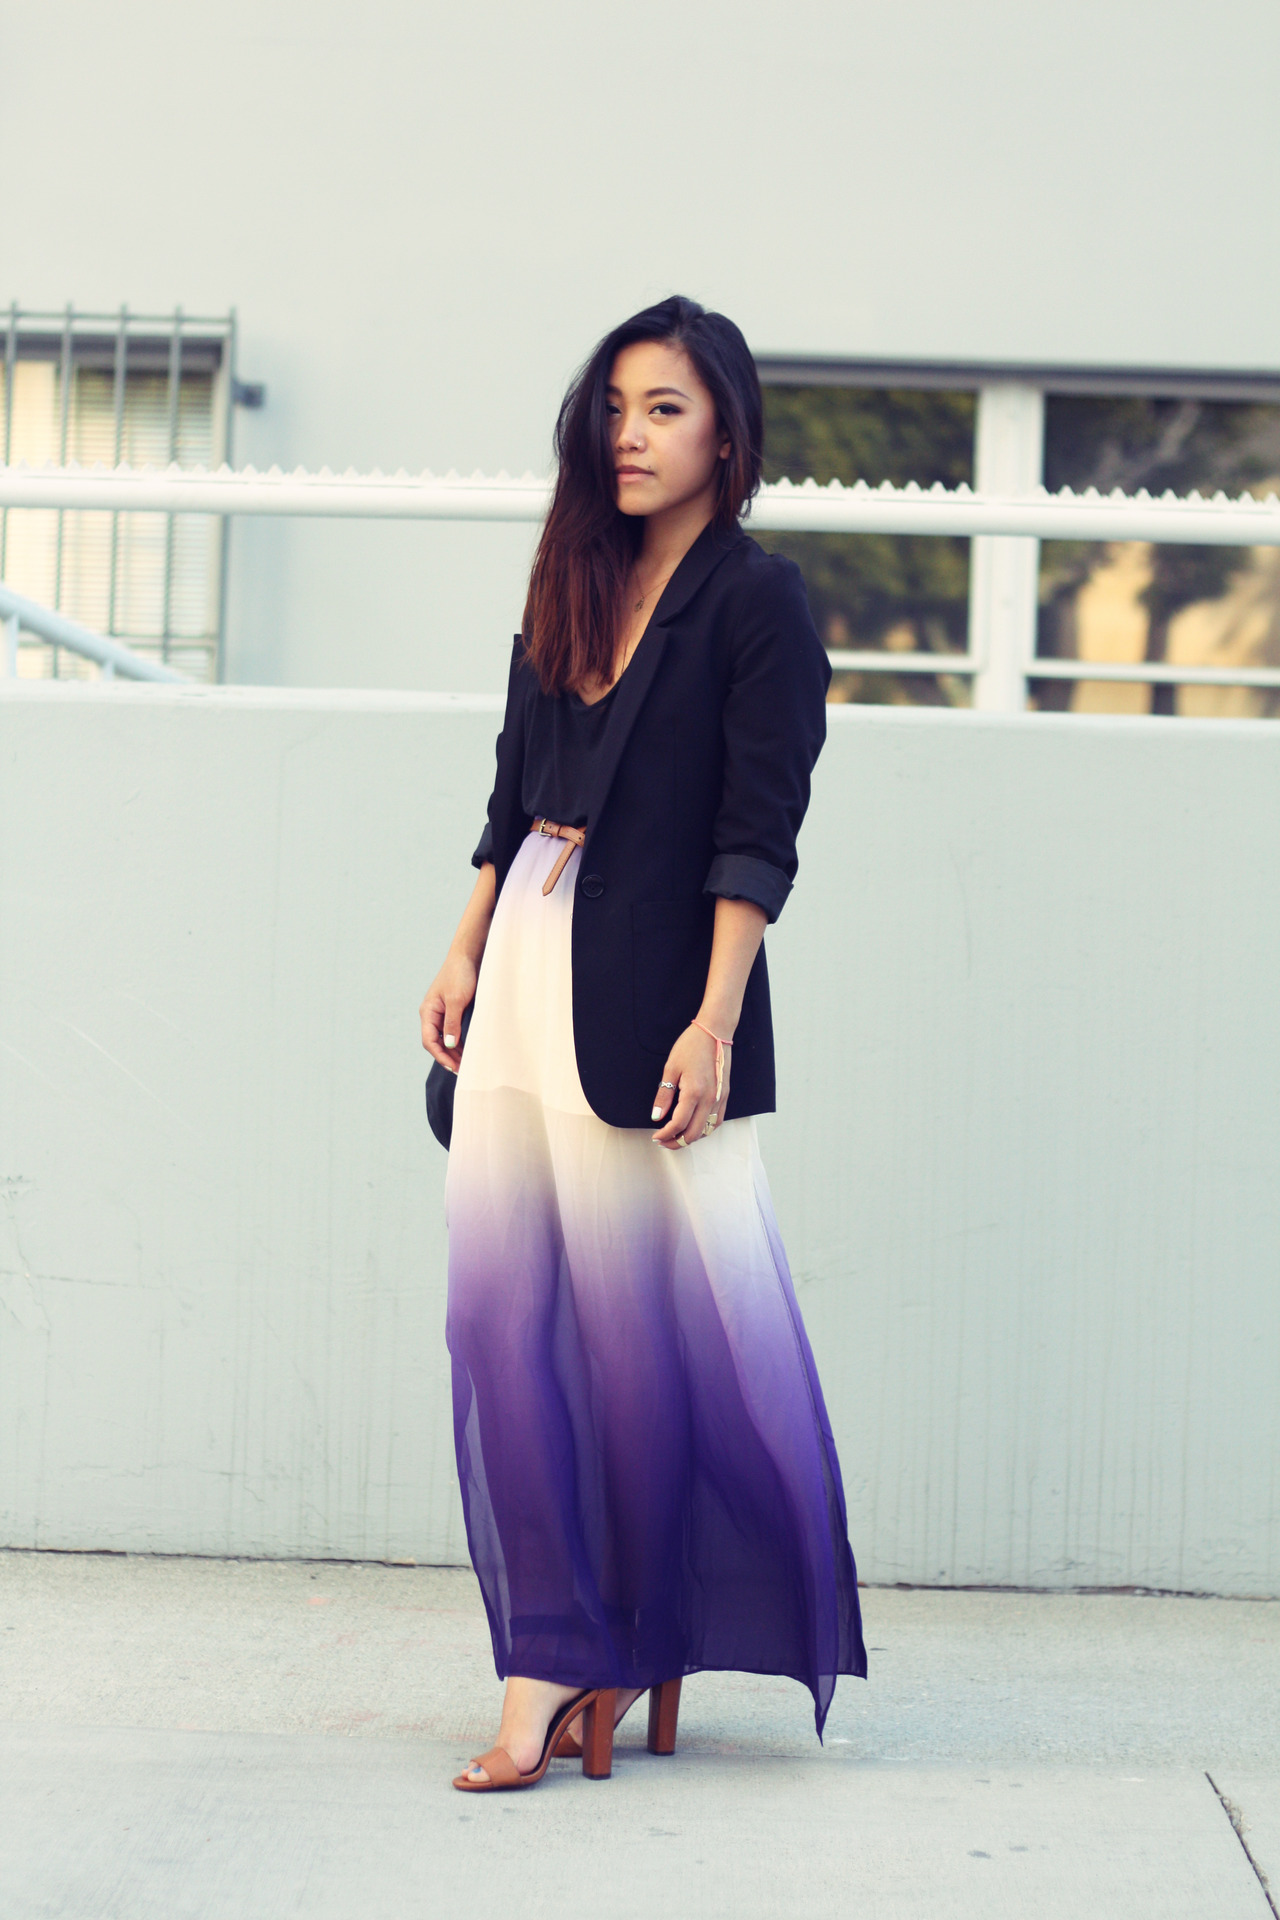 MAXI Skirts: The Trend That Never Dies? – The Fashion Tag Blog